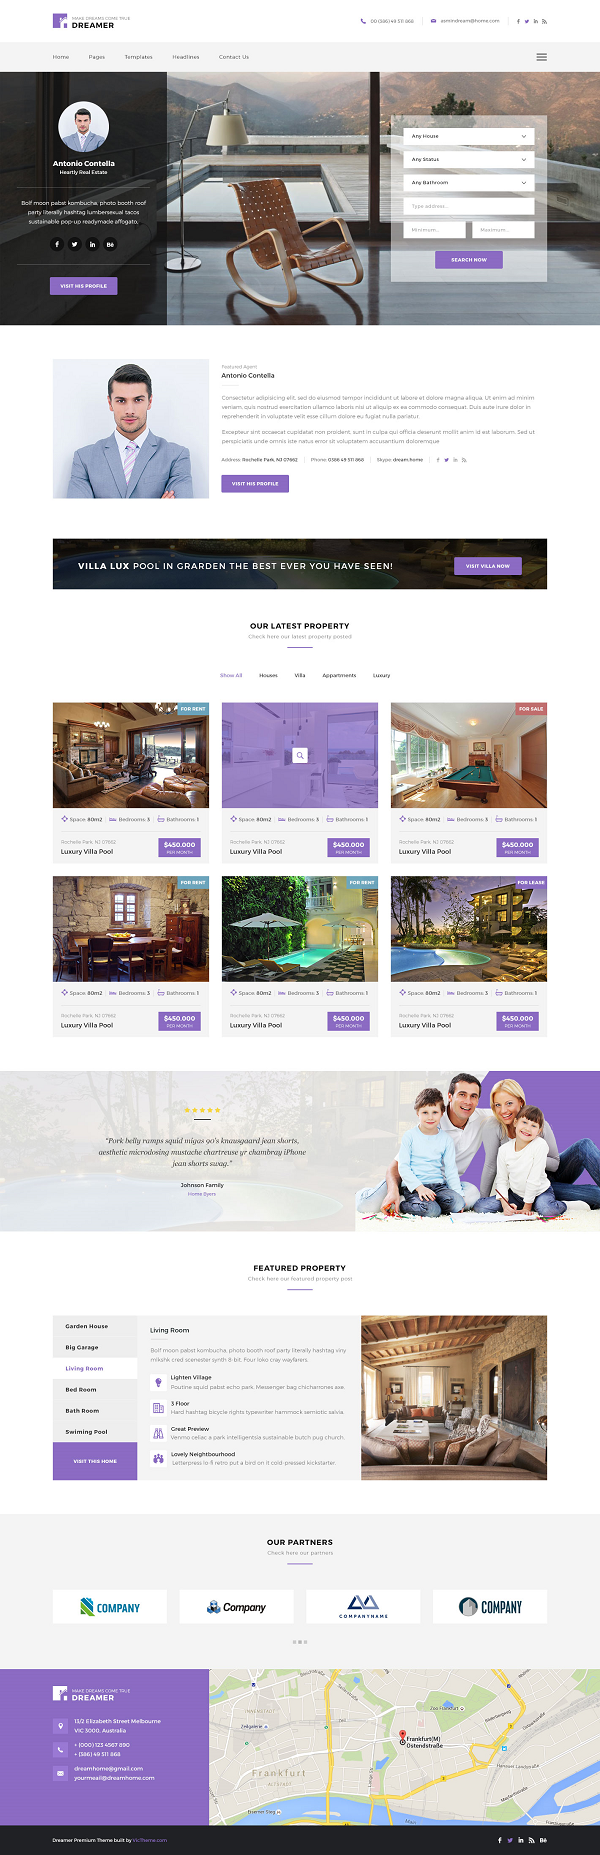 vt_landing_page_white